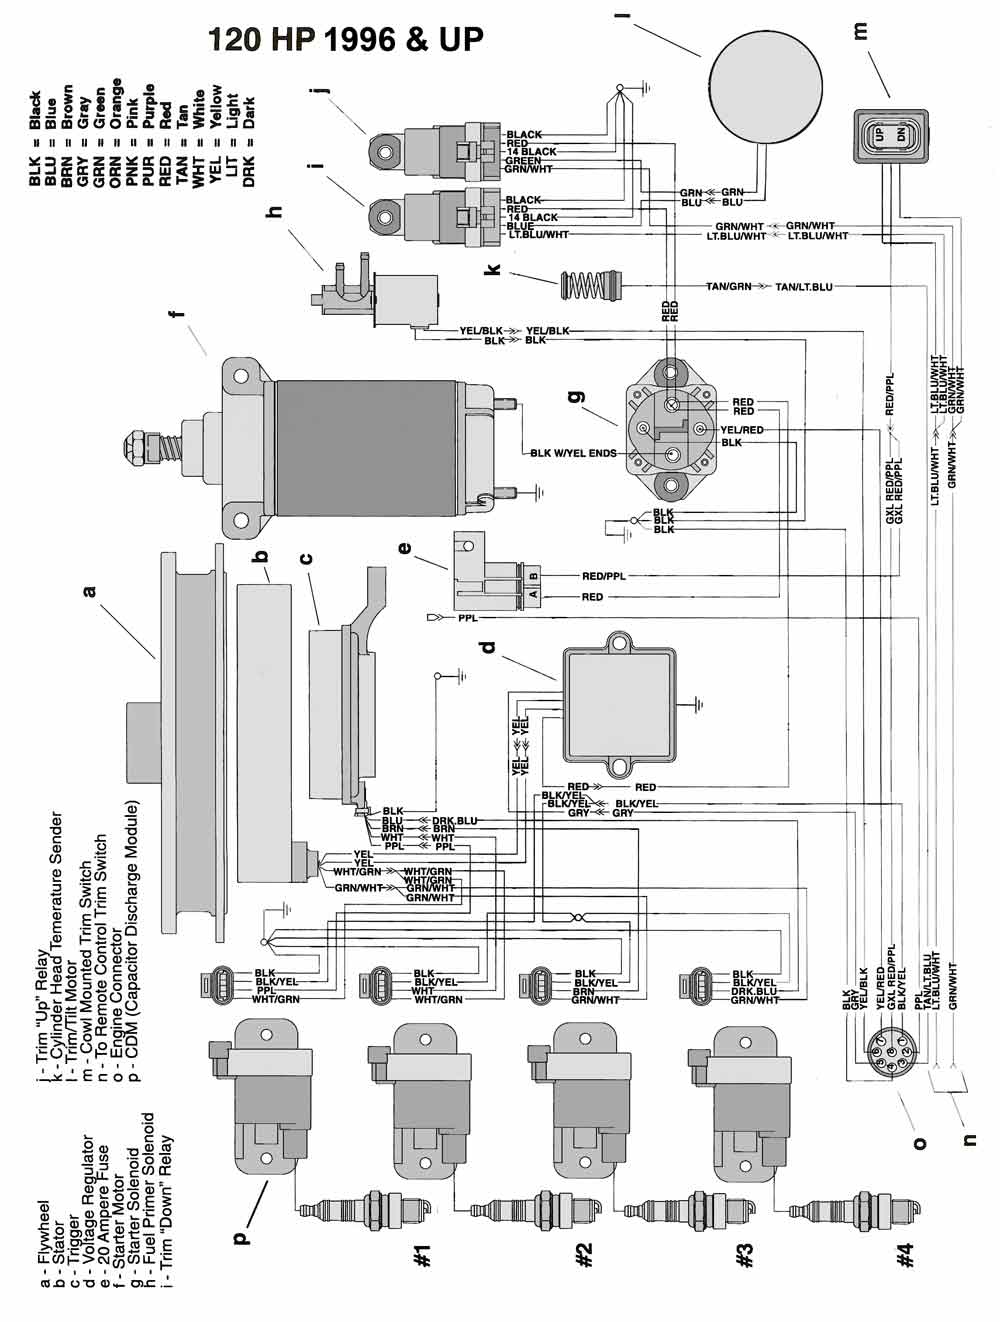 1992 Force 70 Hp Outboard Motor Diagram Wiring - Free Wiring Diagram on evinrude e-tec outboard diagram, yamaha 90 hp outboard diagram, evinrude 48 spl diagram, evinrude engine parts diagram,